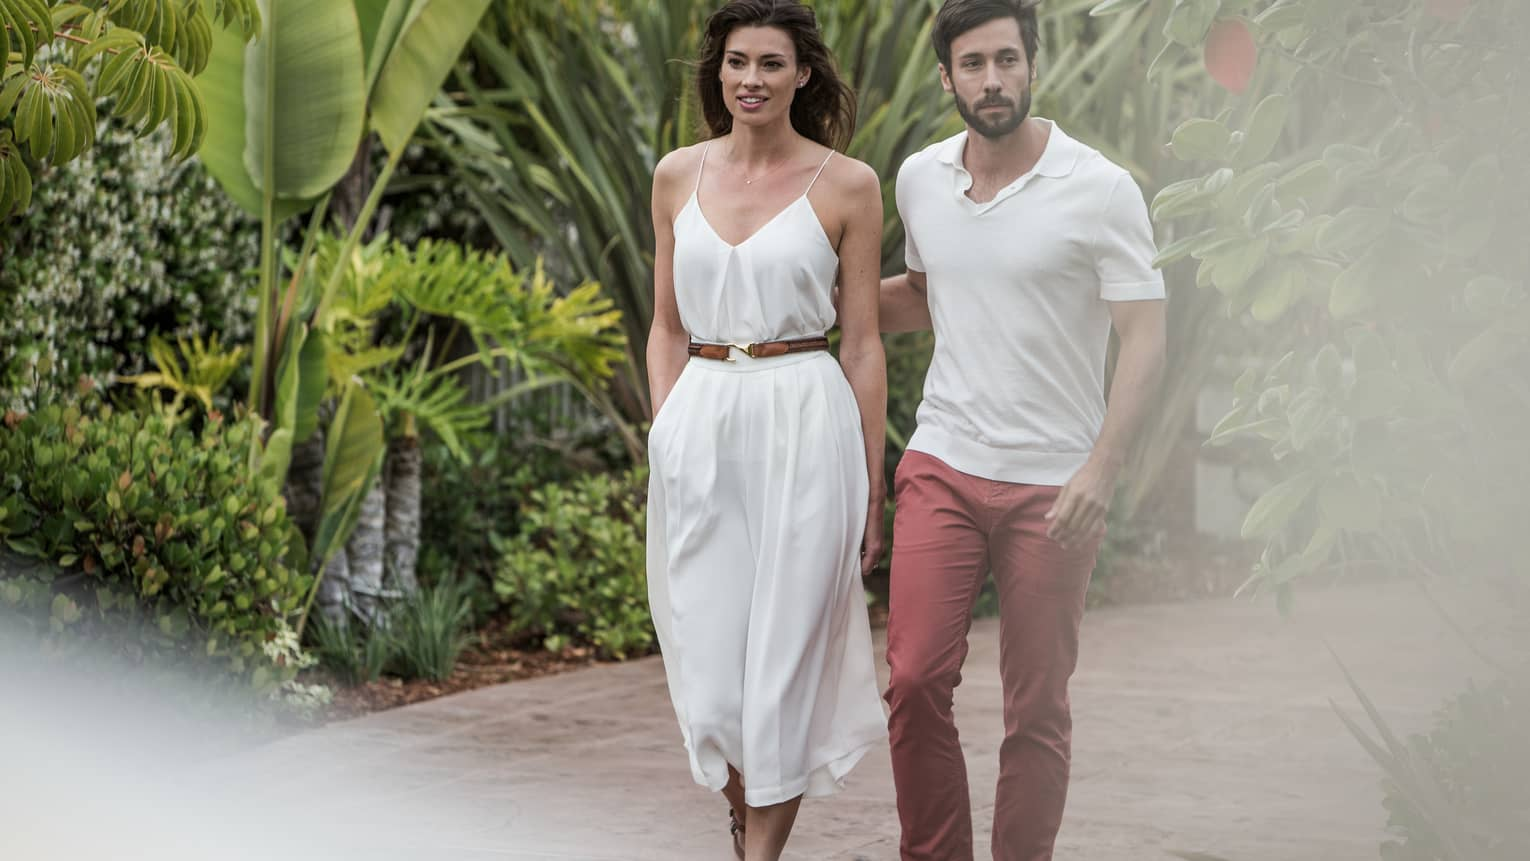 Man and woman in casual summer clothes stroll down path surrounded by tropical plants